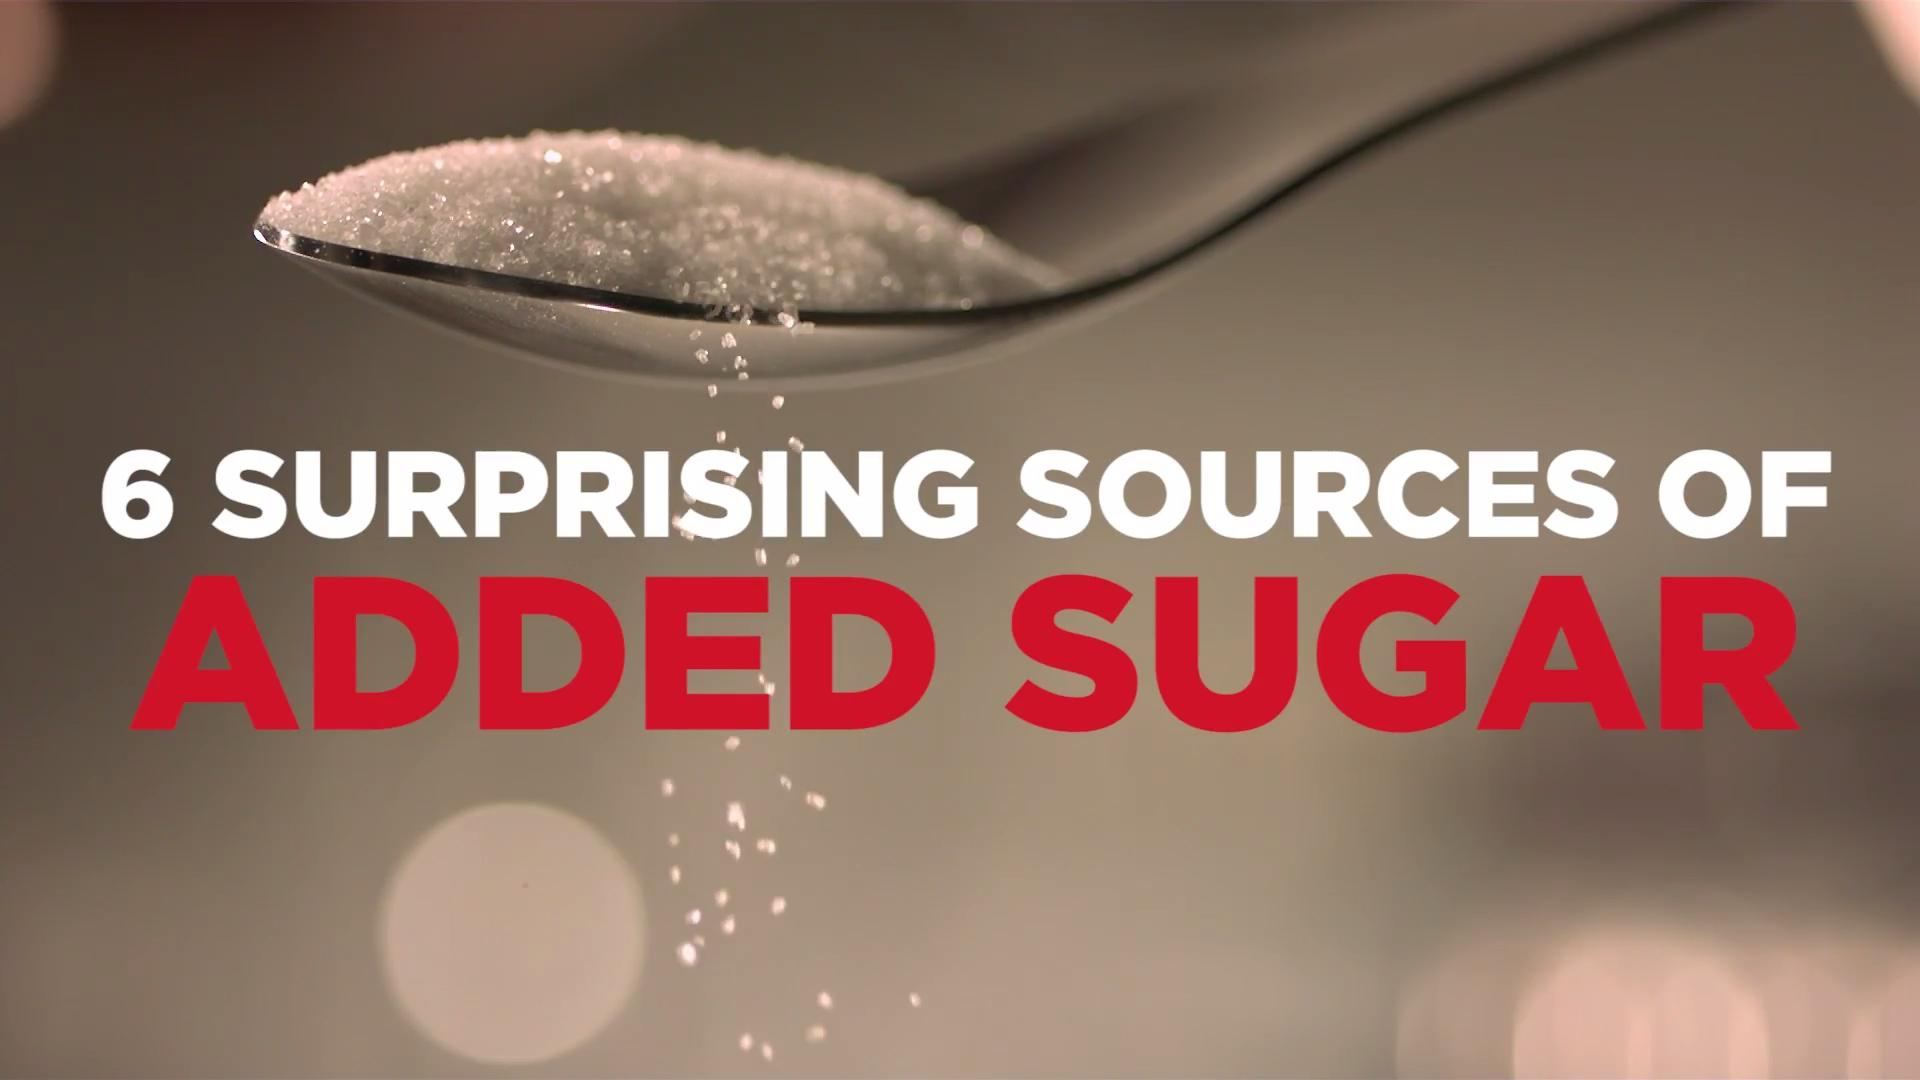 20 Tips About Cutting Sugar From Medical Experts photo